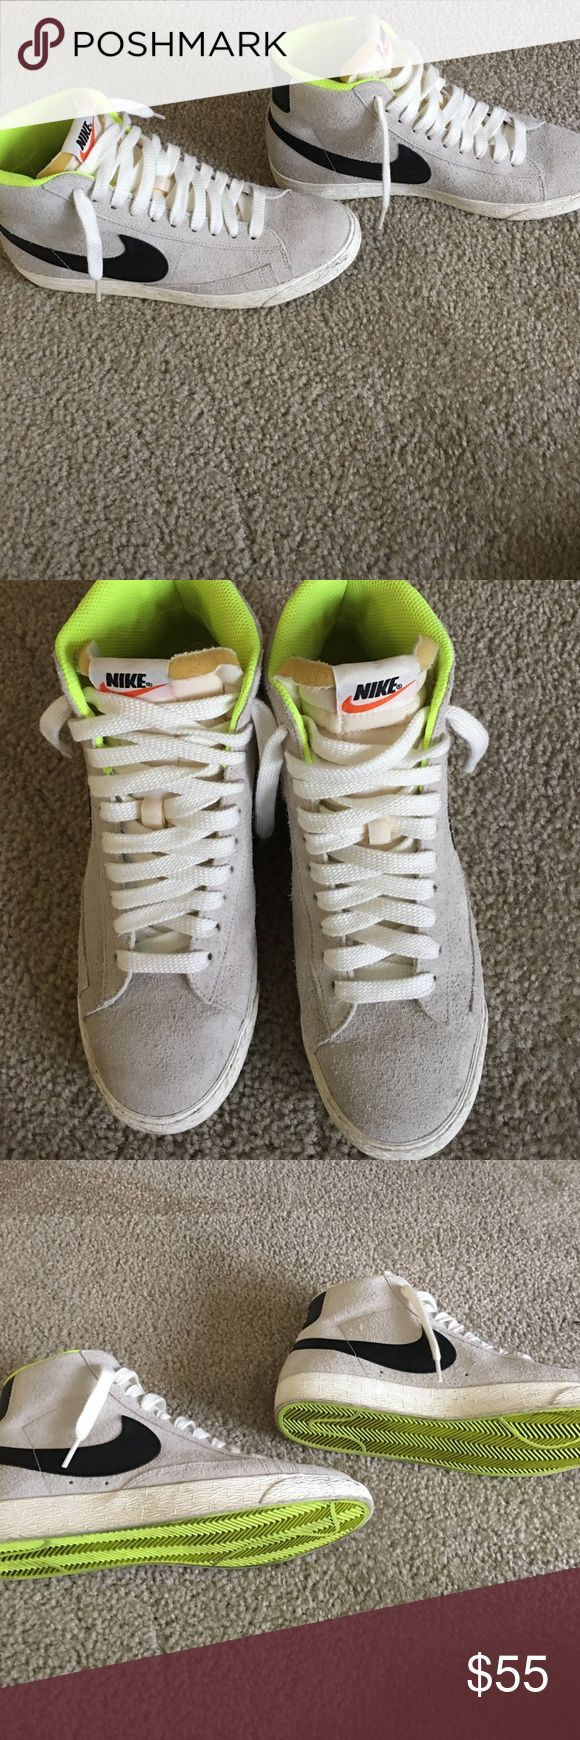 Nike Hi Top Super comfy Nike hi-tops. Grey with highlighter yellow trim. Worn only twice, smoke free home! Nike Shoes Sneakers